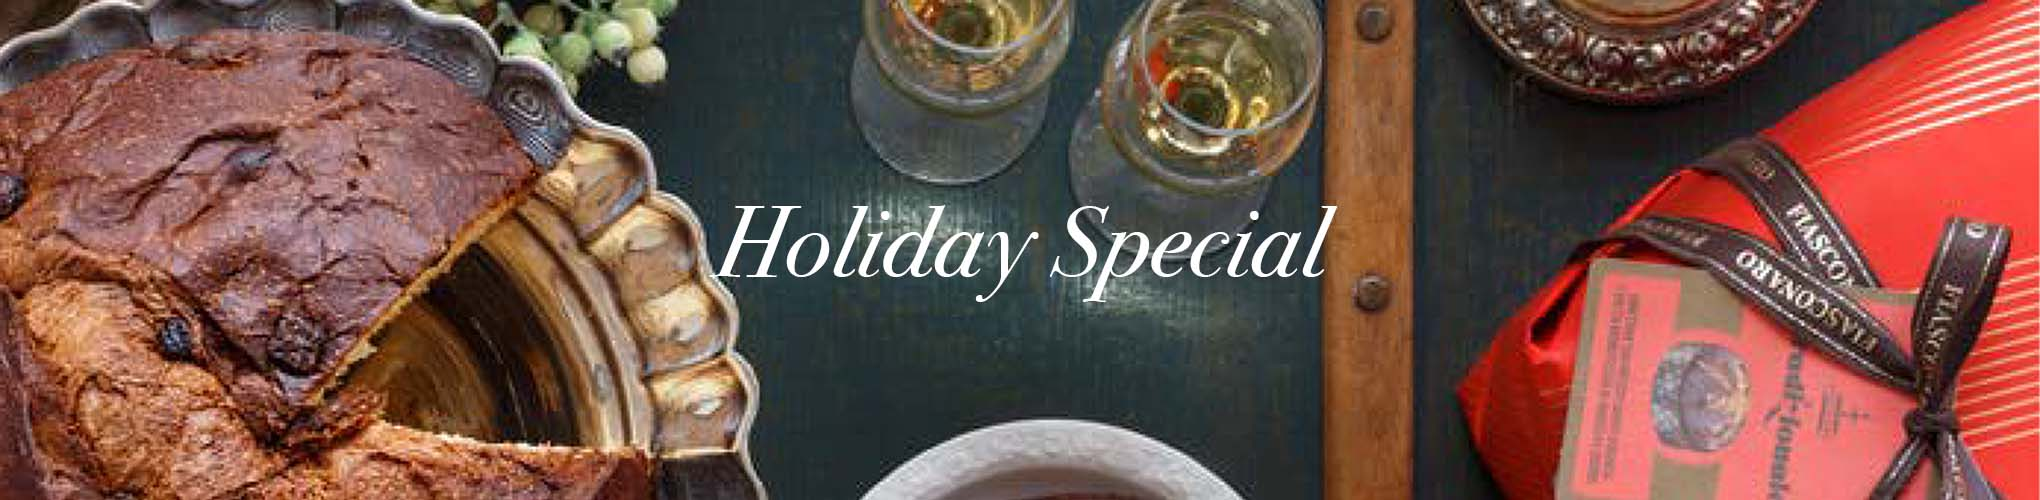 Holiday Special Gourmet